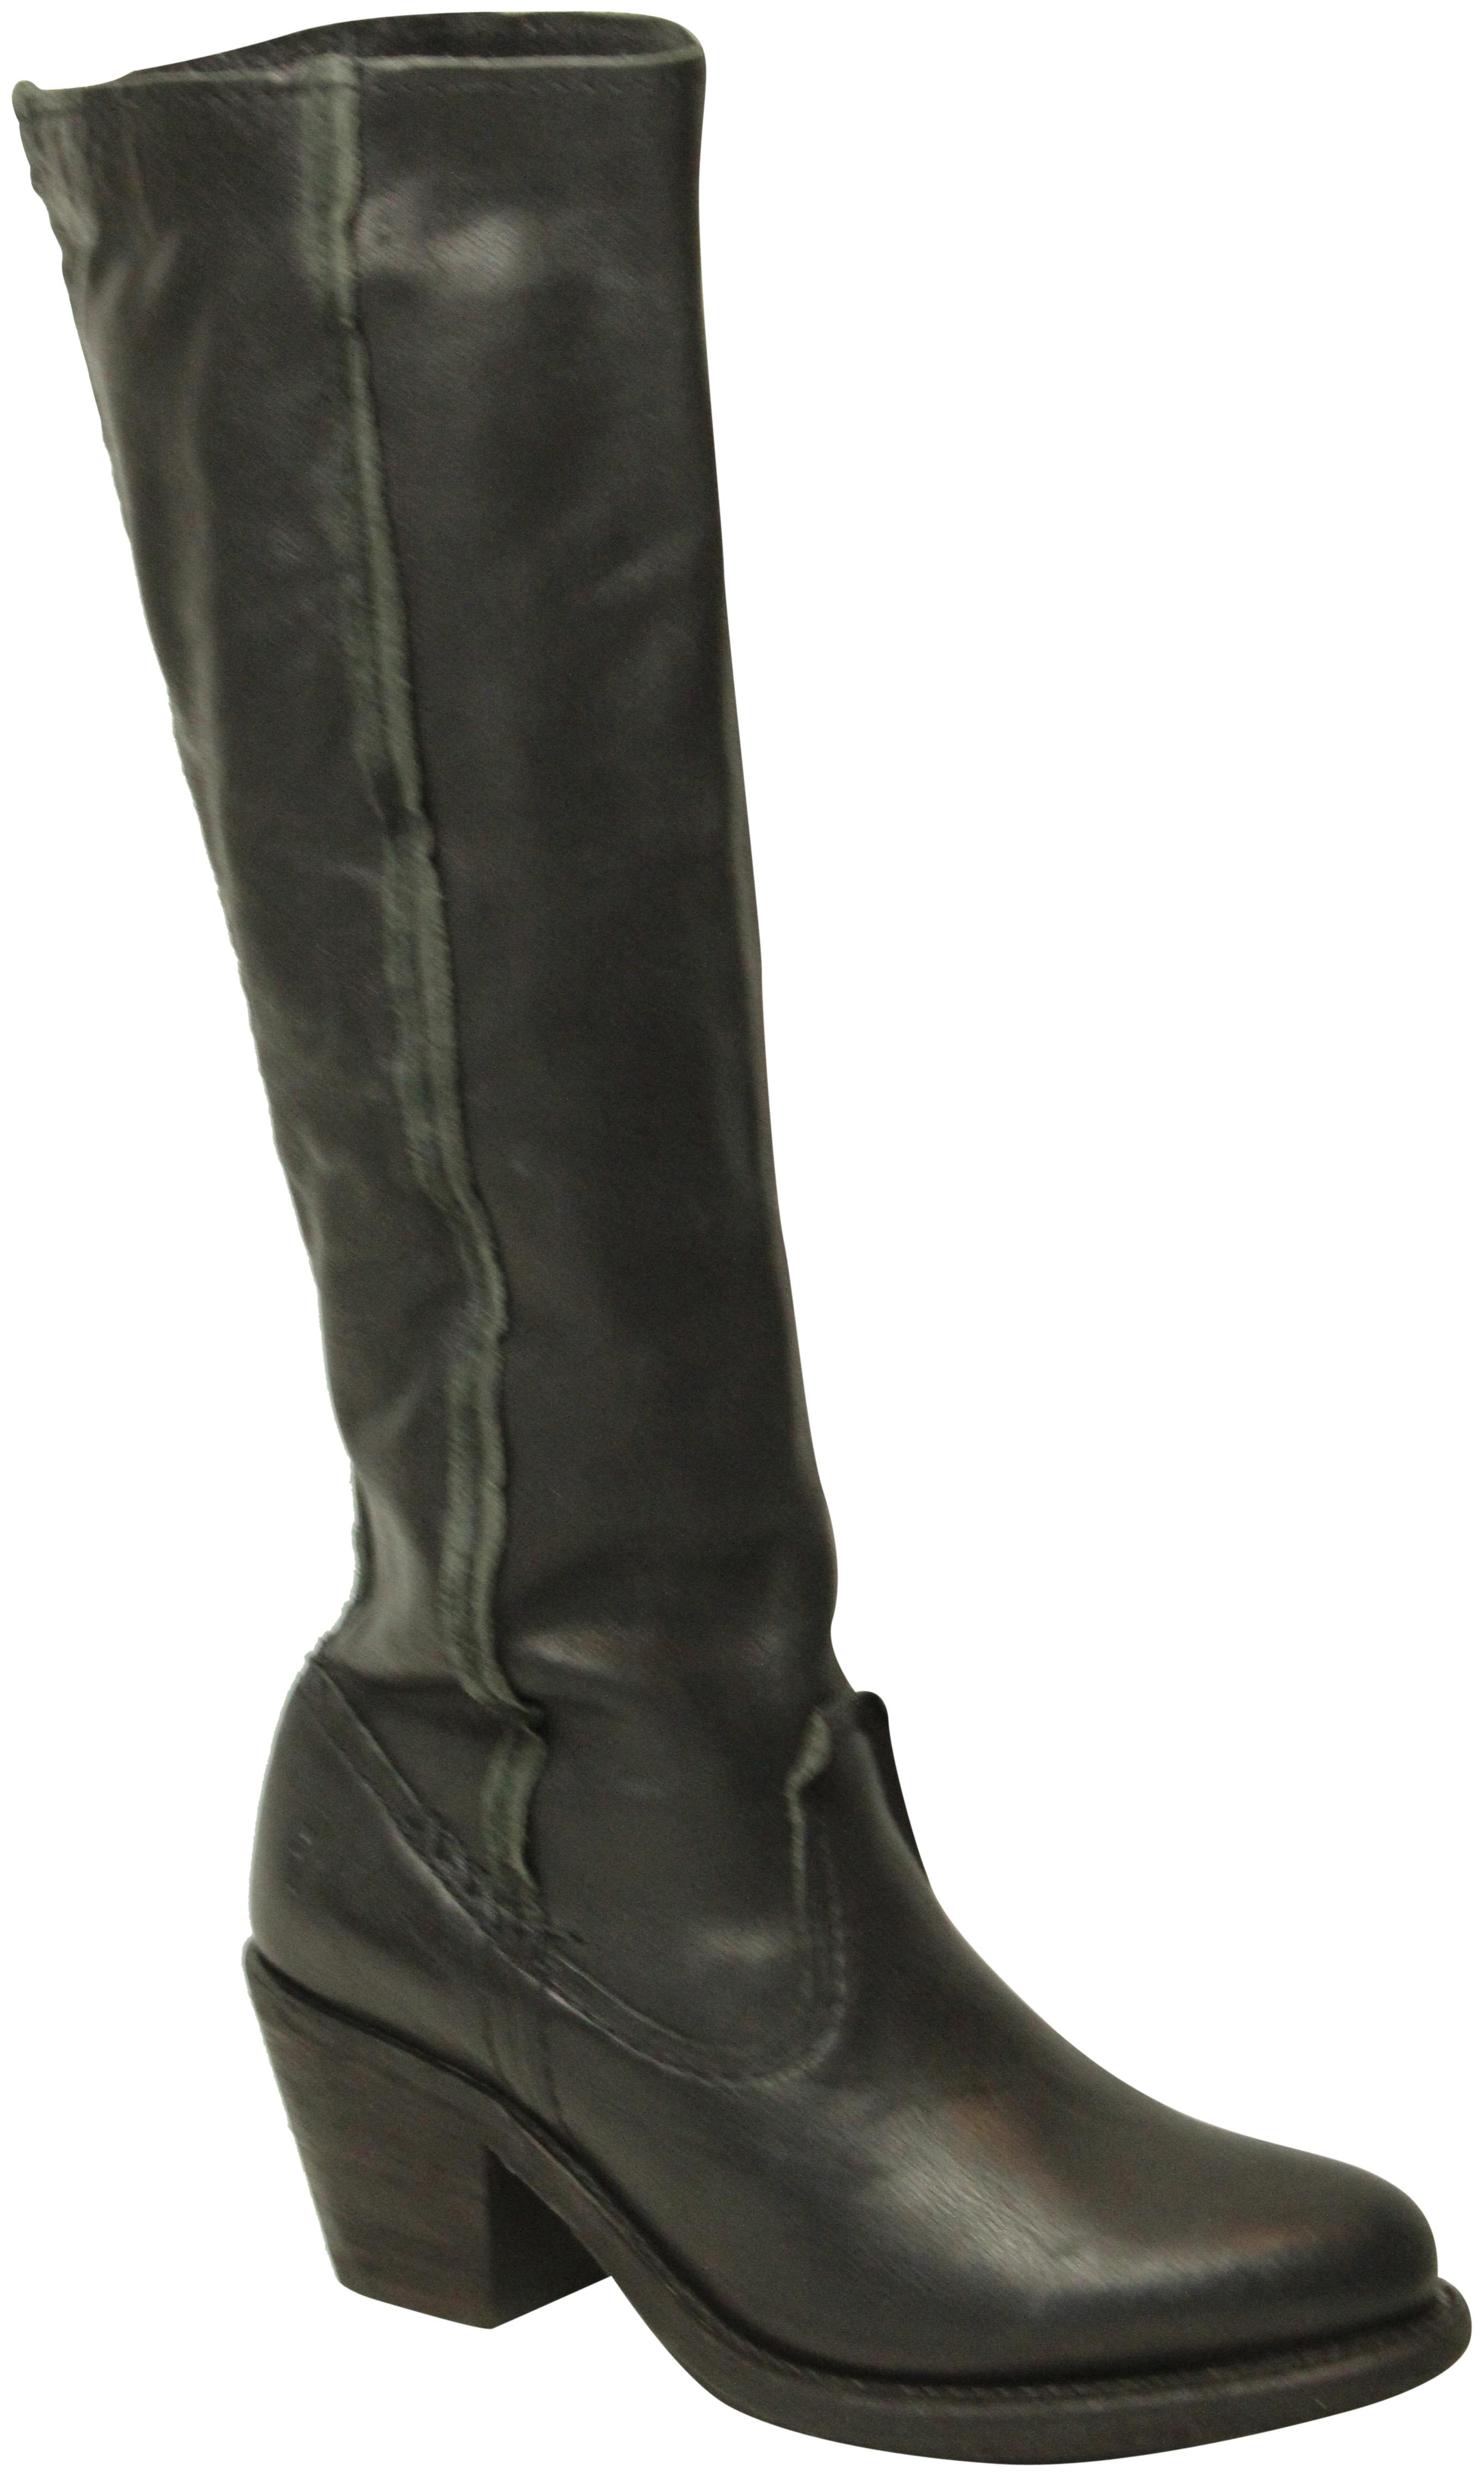 Frye Washed Vintage Leather Upper Light Distressing Half Zip Closure Made  In Mexico Black Boots ...